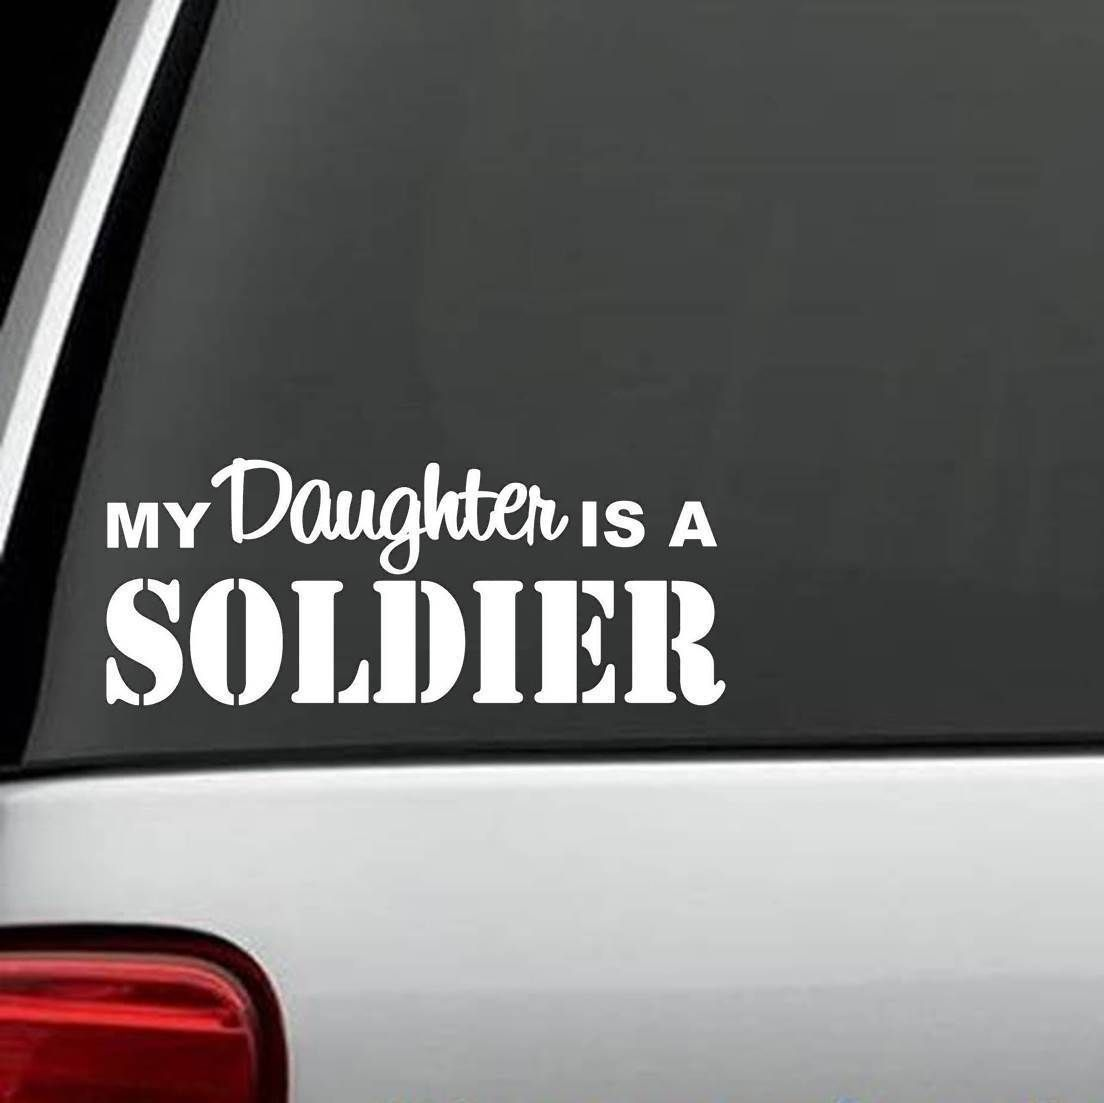 My Daughter Is A Soldier Vinyl Decal Sticker For Car Truck Suv Van Laptop Wall Vinyl Decal Stickers Vinyl Decals Car Stickers [ 1103 x 1104 Pixel ]